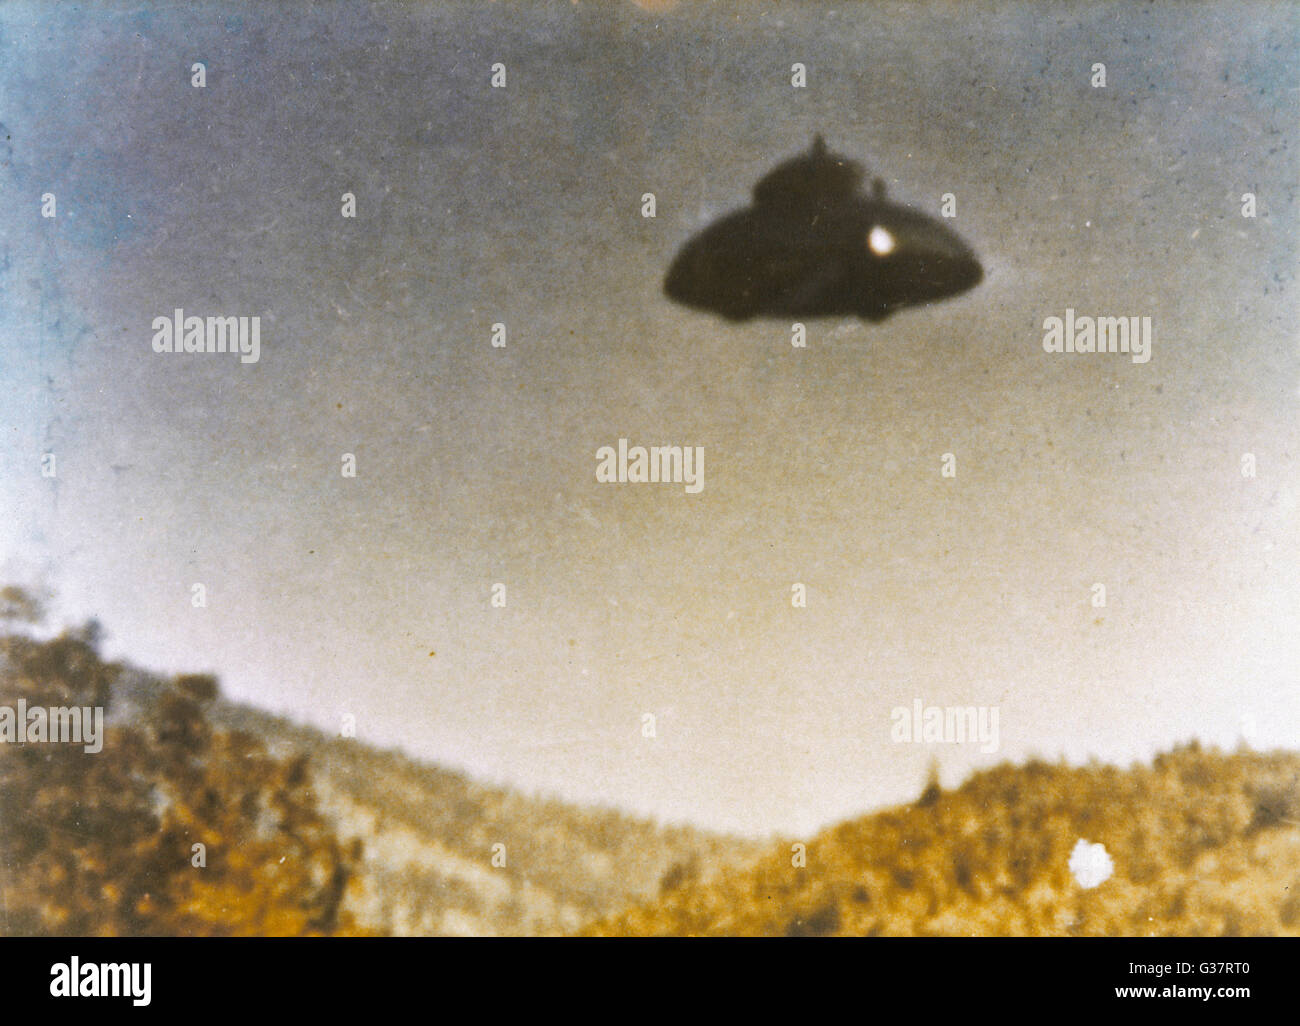 Adamski-type UFO allegedly  photographed by Fritz van Nest  near Kanab, Utah, in full  daylight       Date: 21 March - Stock Image